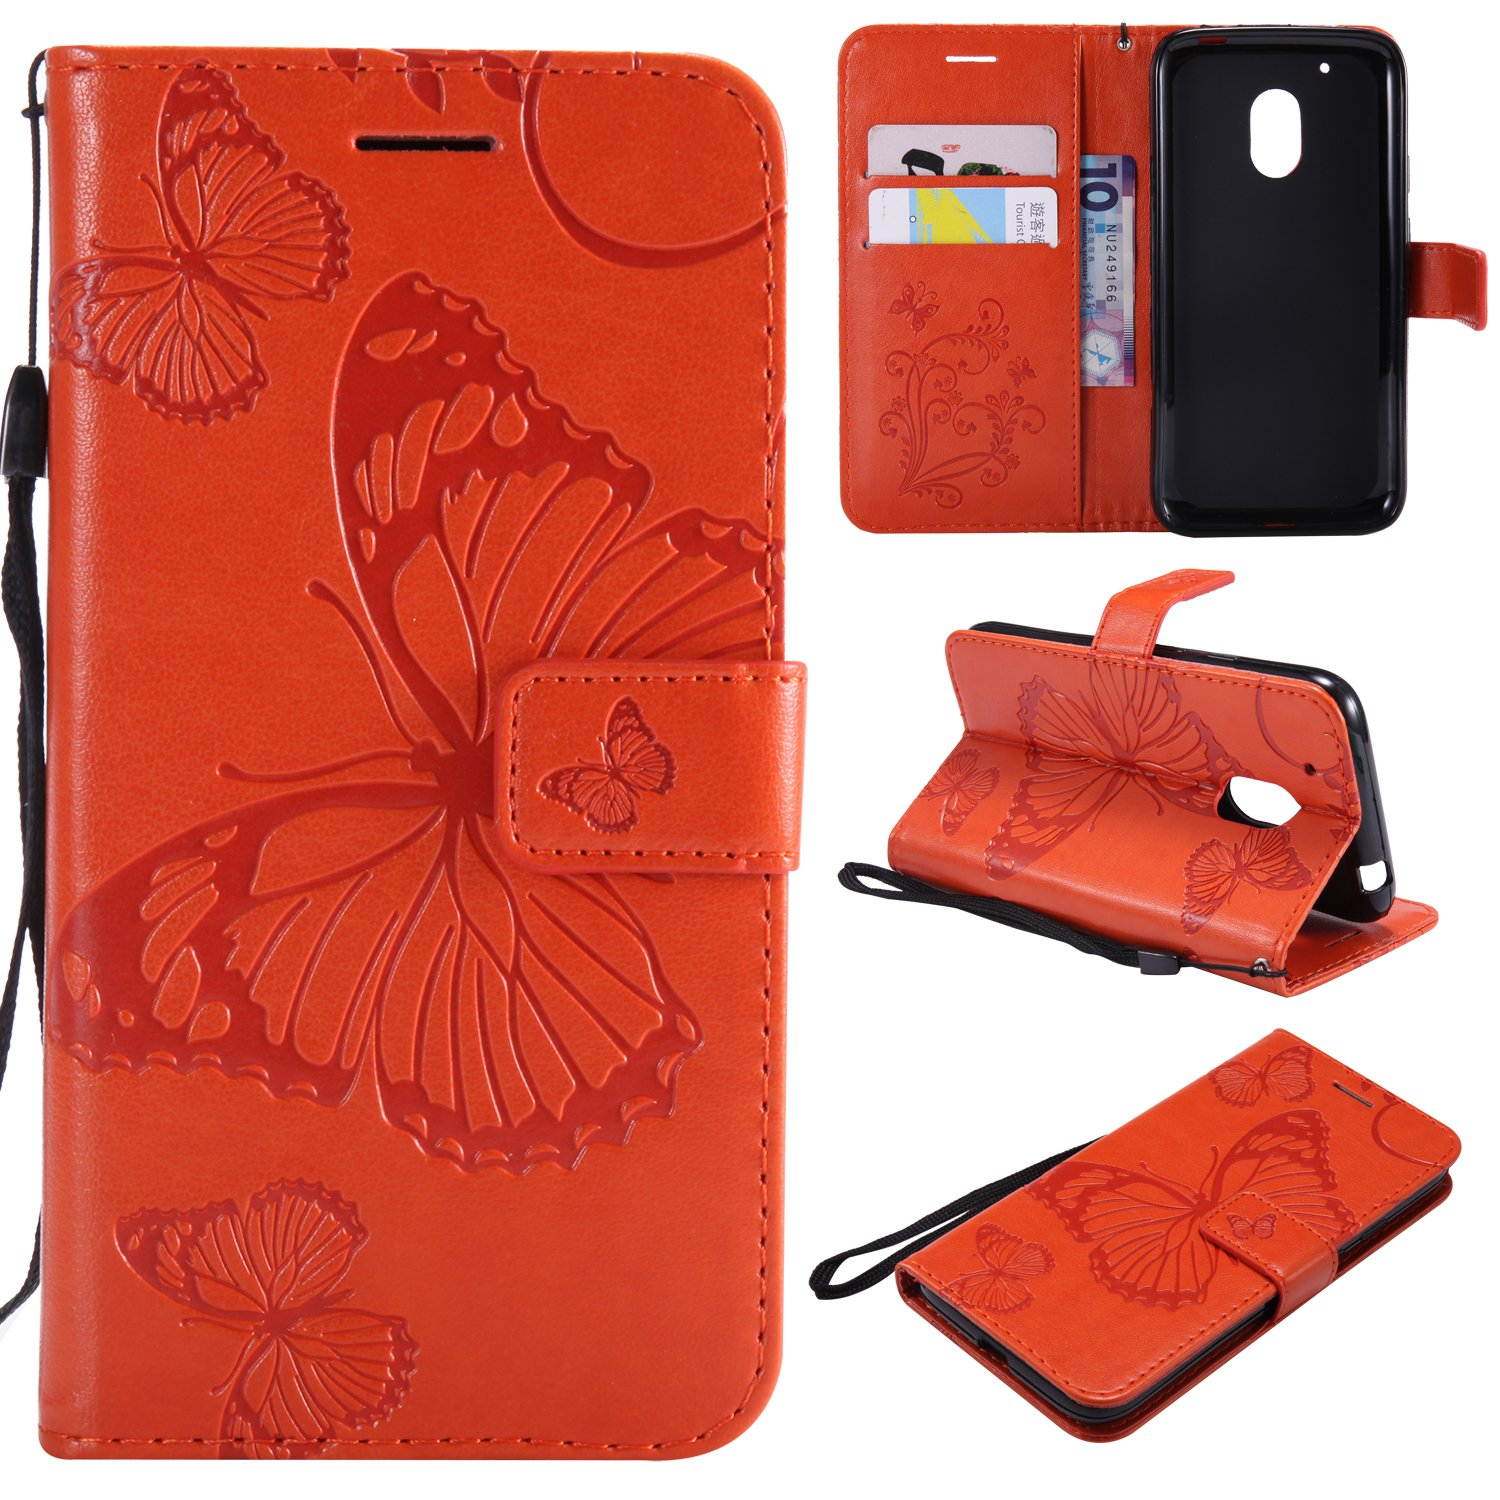 newest d0cb7 afe46 Amazon.com: ARSUE Moto G4 Play Case,Moto G4 Play Wallet Case,Leather ...